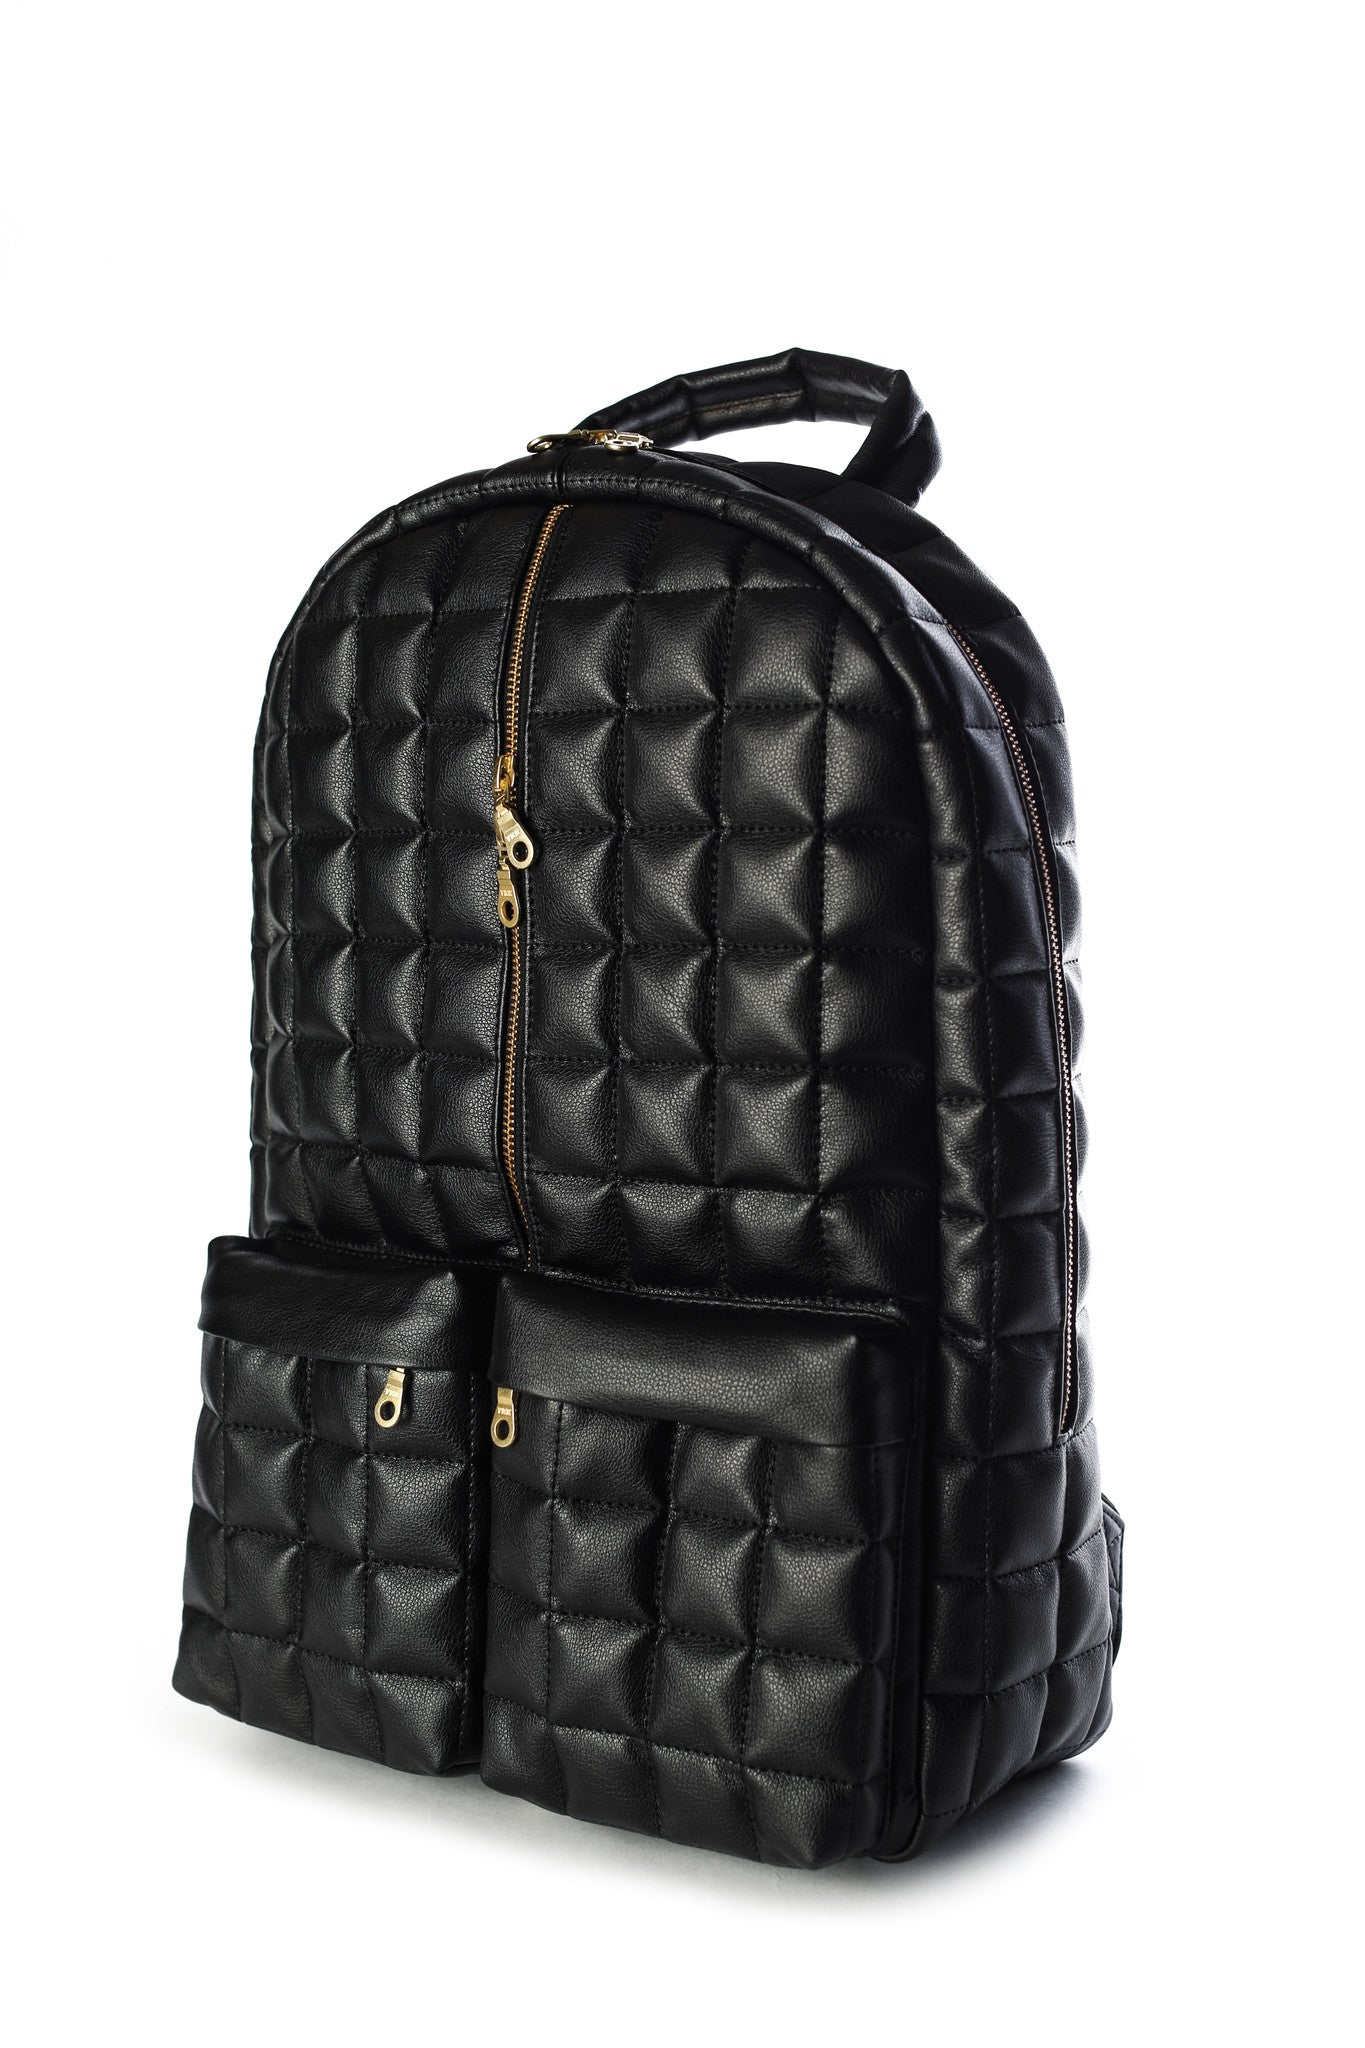 Marc 1 Backpack- Black Grain leather PRE ORDER [January 15th *Release*]